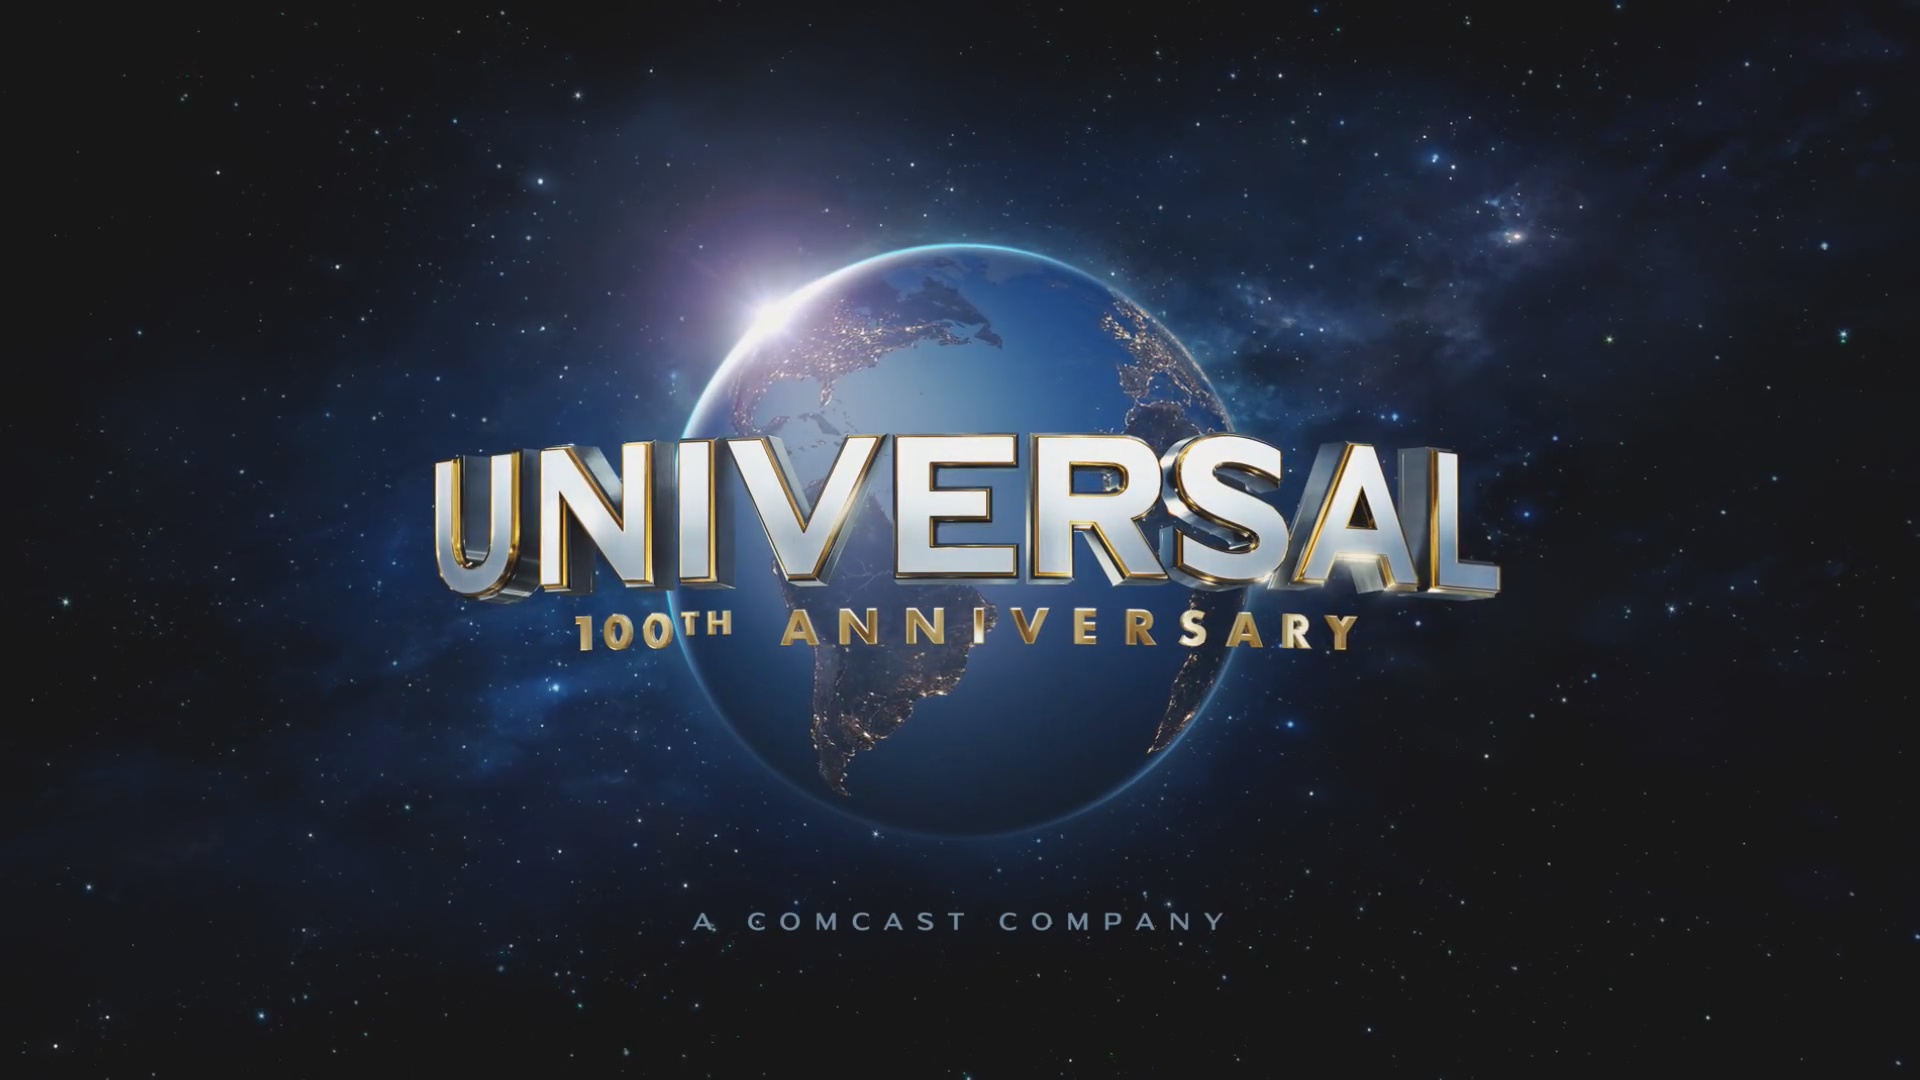 Universal Pictures (2012)